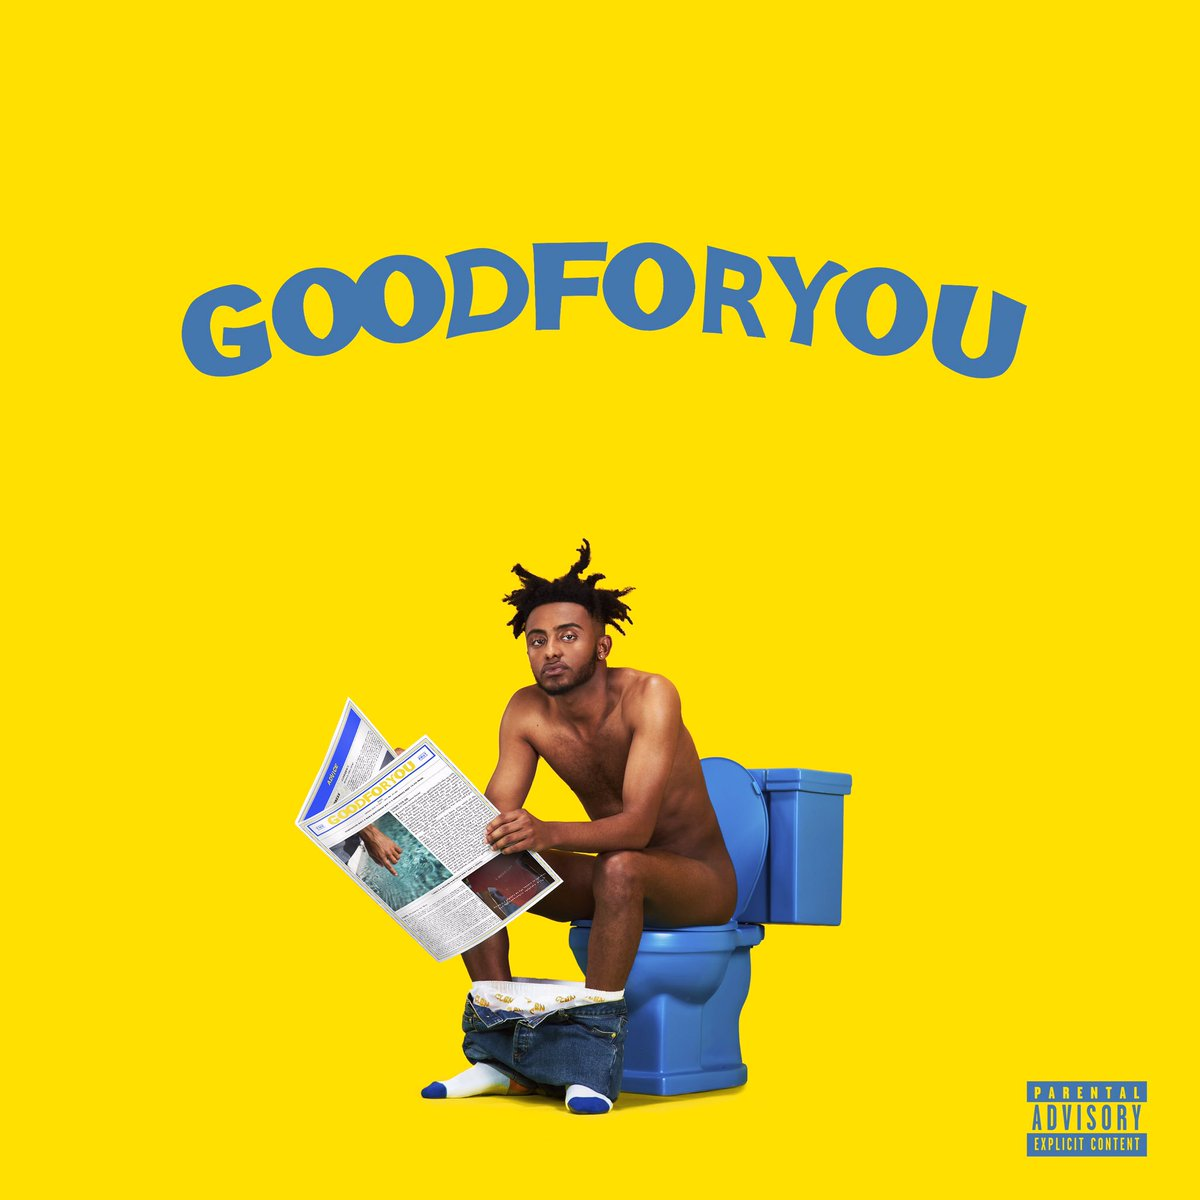 RT @heyamine: Good For You, my debut album. July 28th. https://t.co/Sfi5WZH1Ky